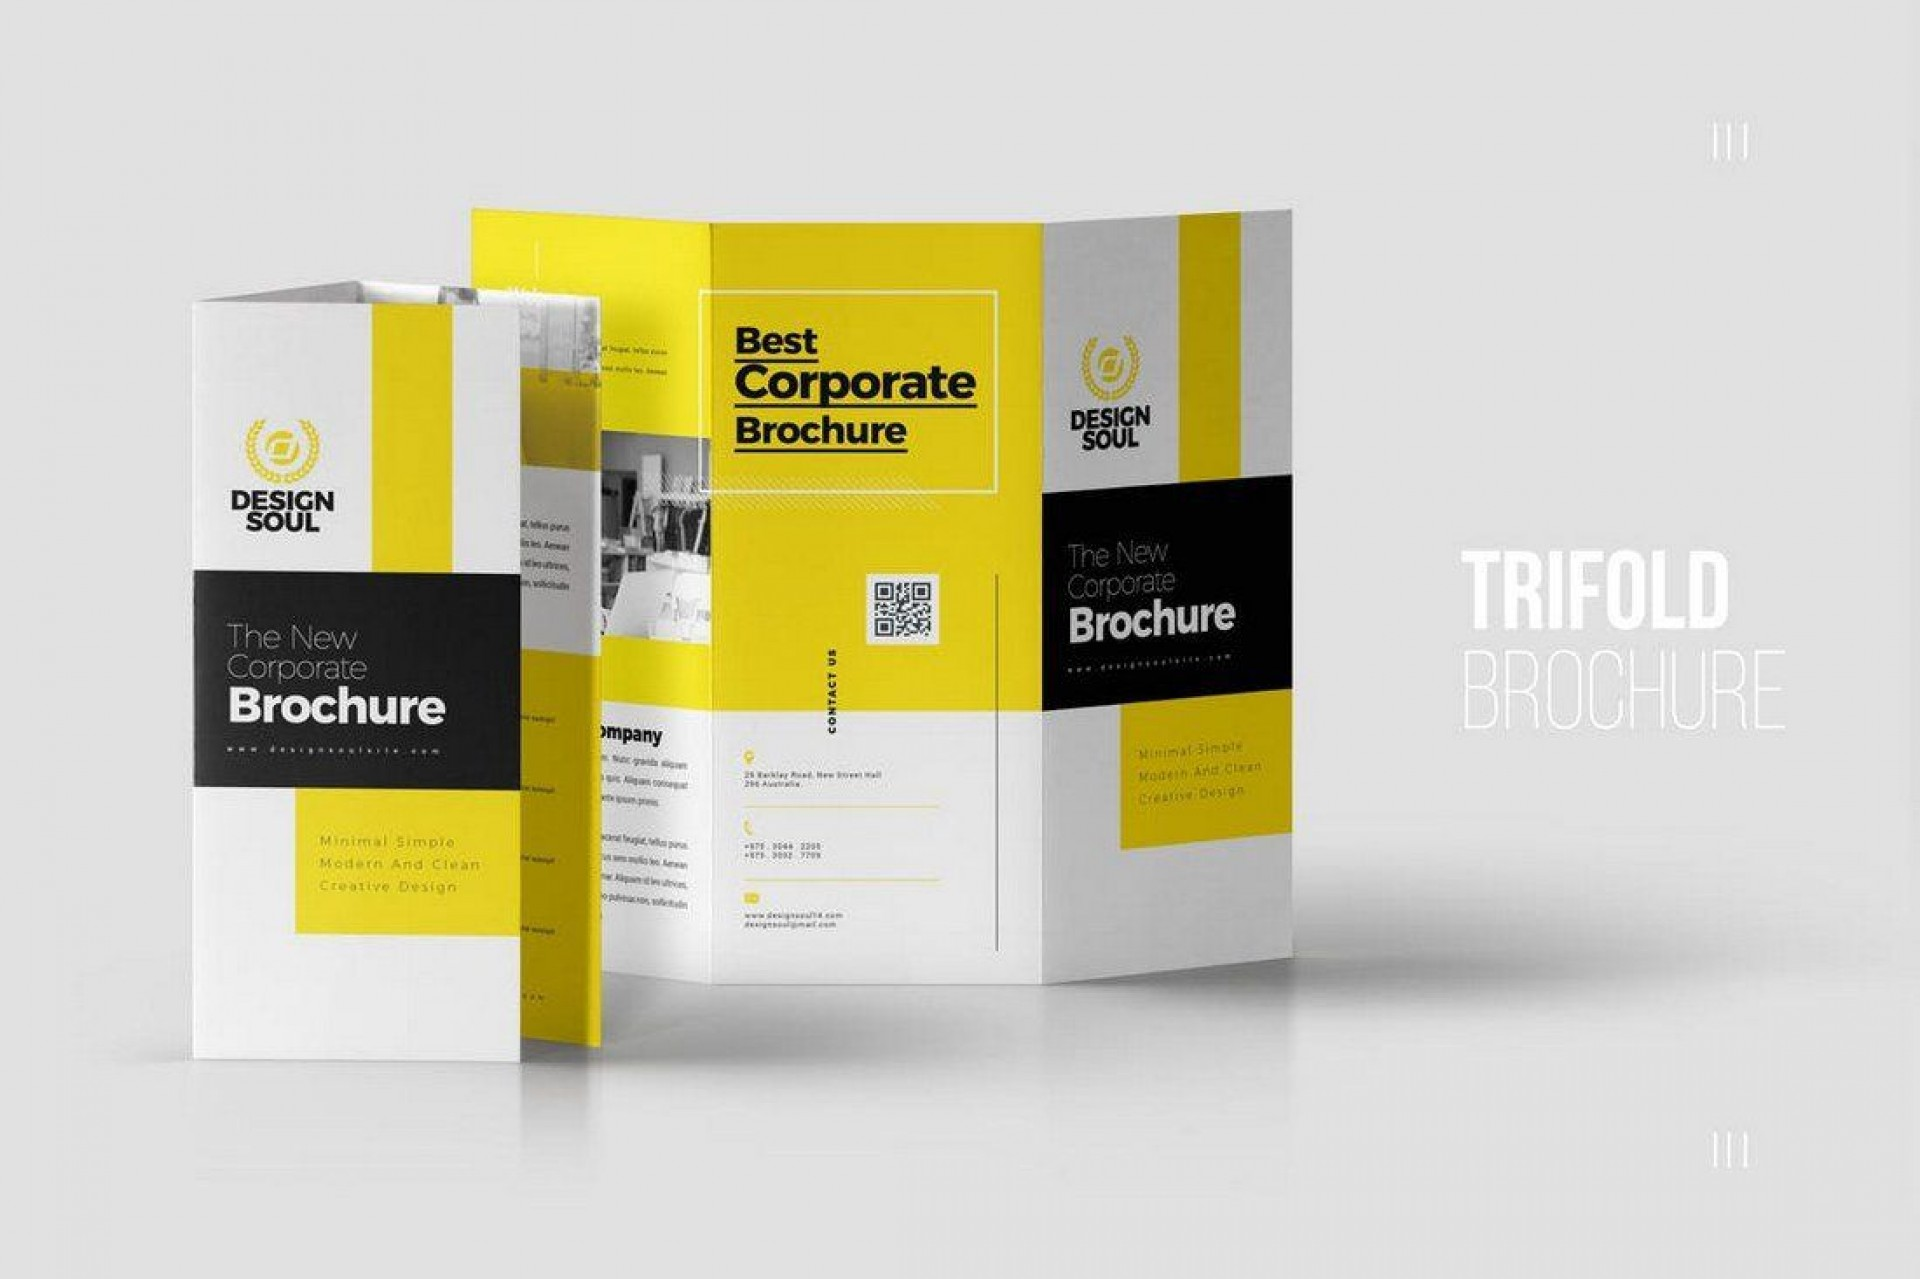 004 Formidable Three Fold Brochure Template Indesign Highest Clarity  3 A41920